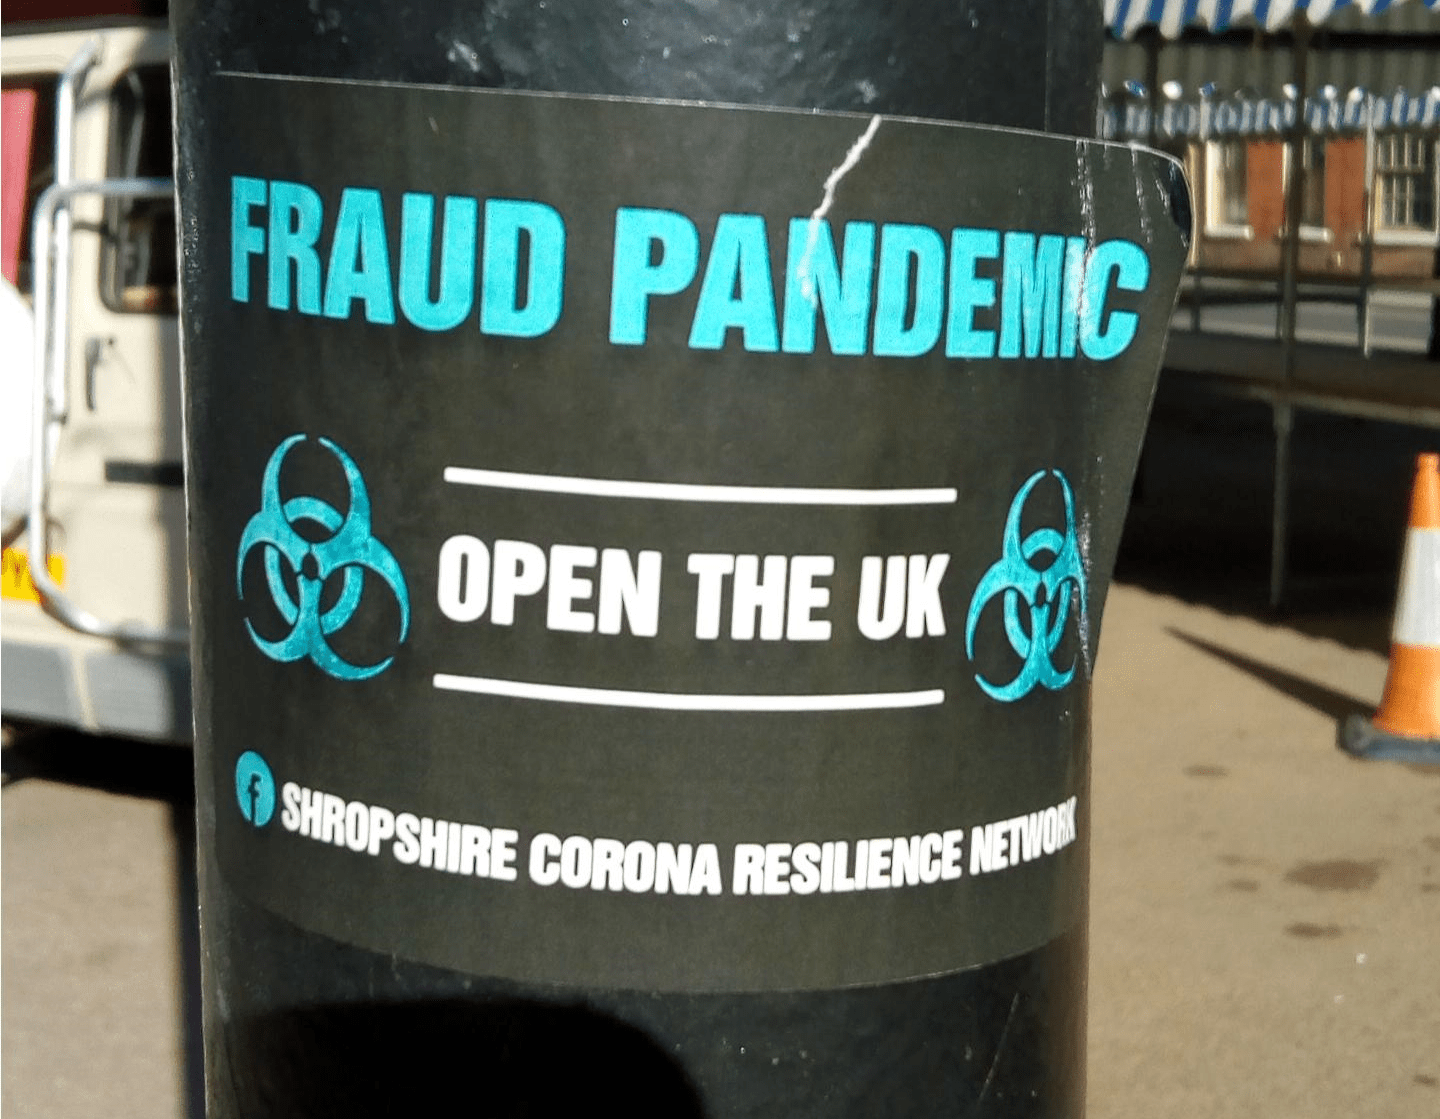 Unwelcome guerrilla Covid-19 signs in Ludlow, scarecrow strangers, and ambiguous signs that lead to fines